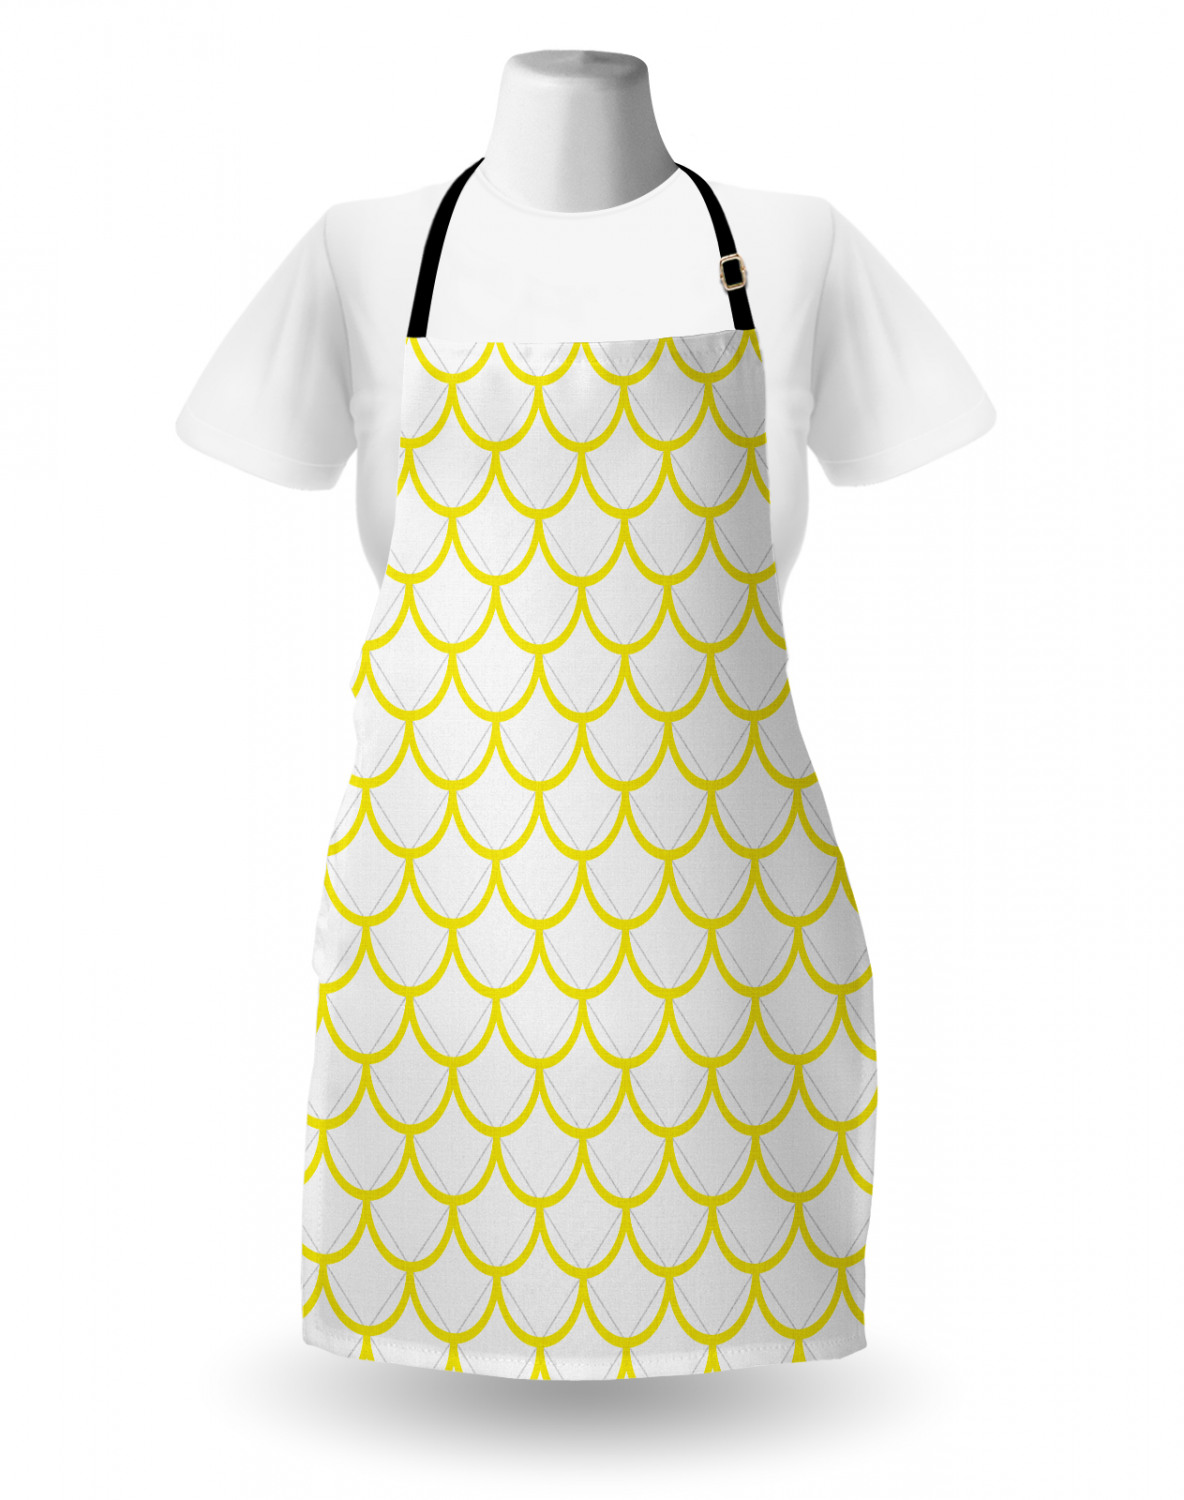 Ambesonne-Outdoor-Use-Apron-with-Adjustable-Neck-Strap-for-Gardening-and-Cooking miniatura 155